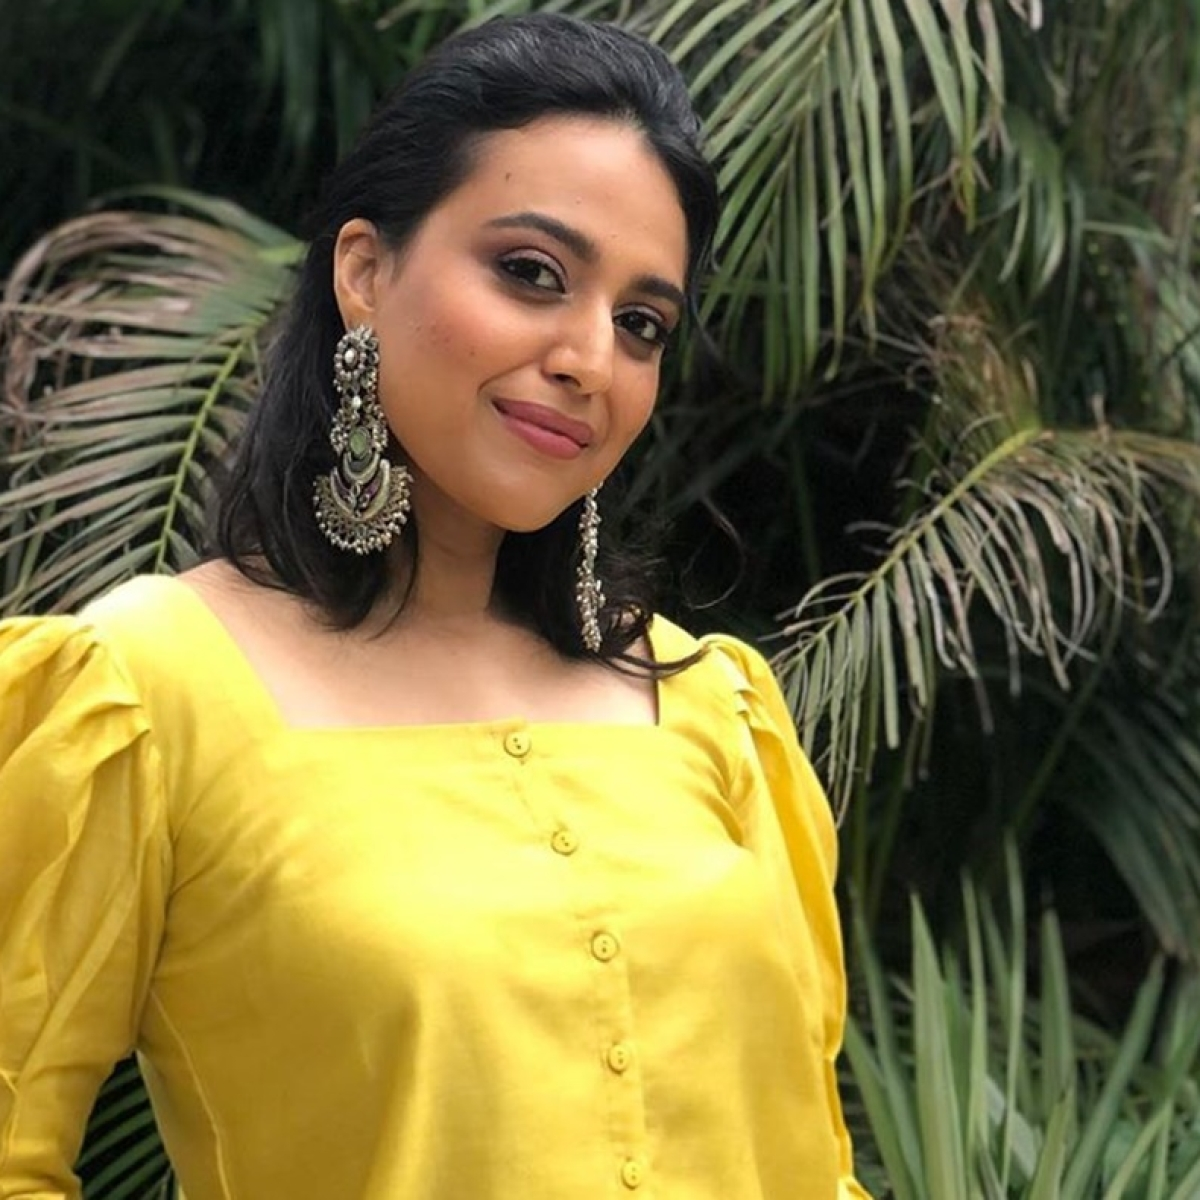 Good news for Swara Bhasker: SG rejects contempt petition against the actor for comments about Ayodhya verdict